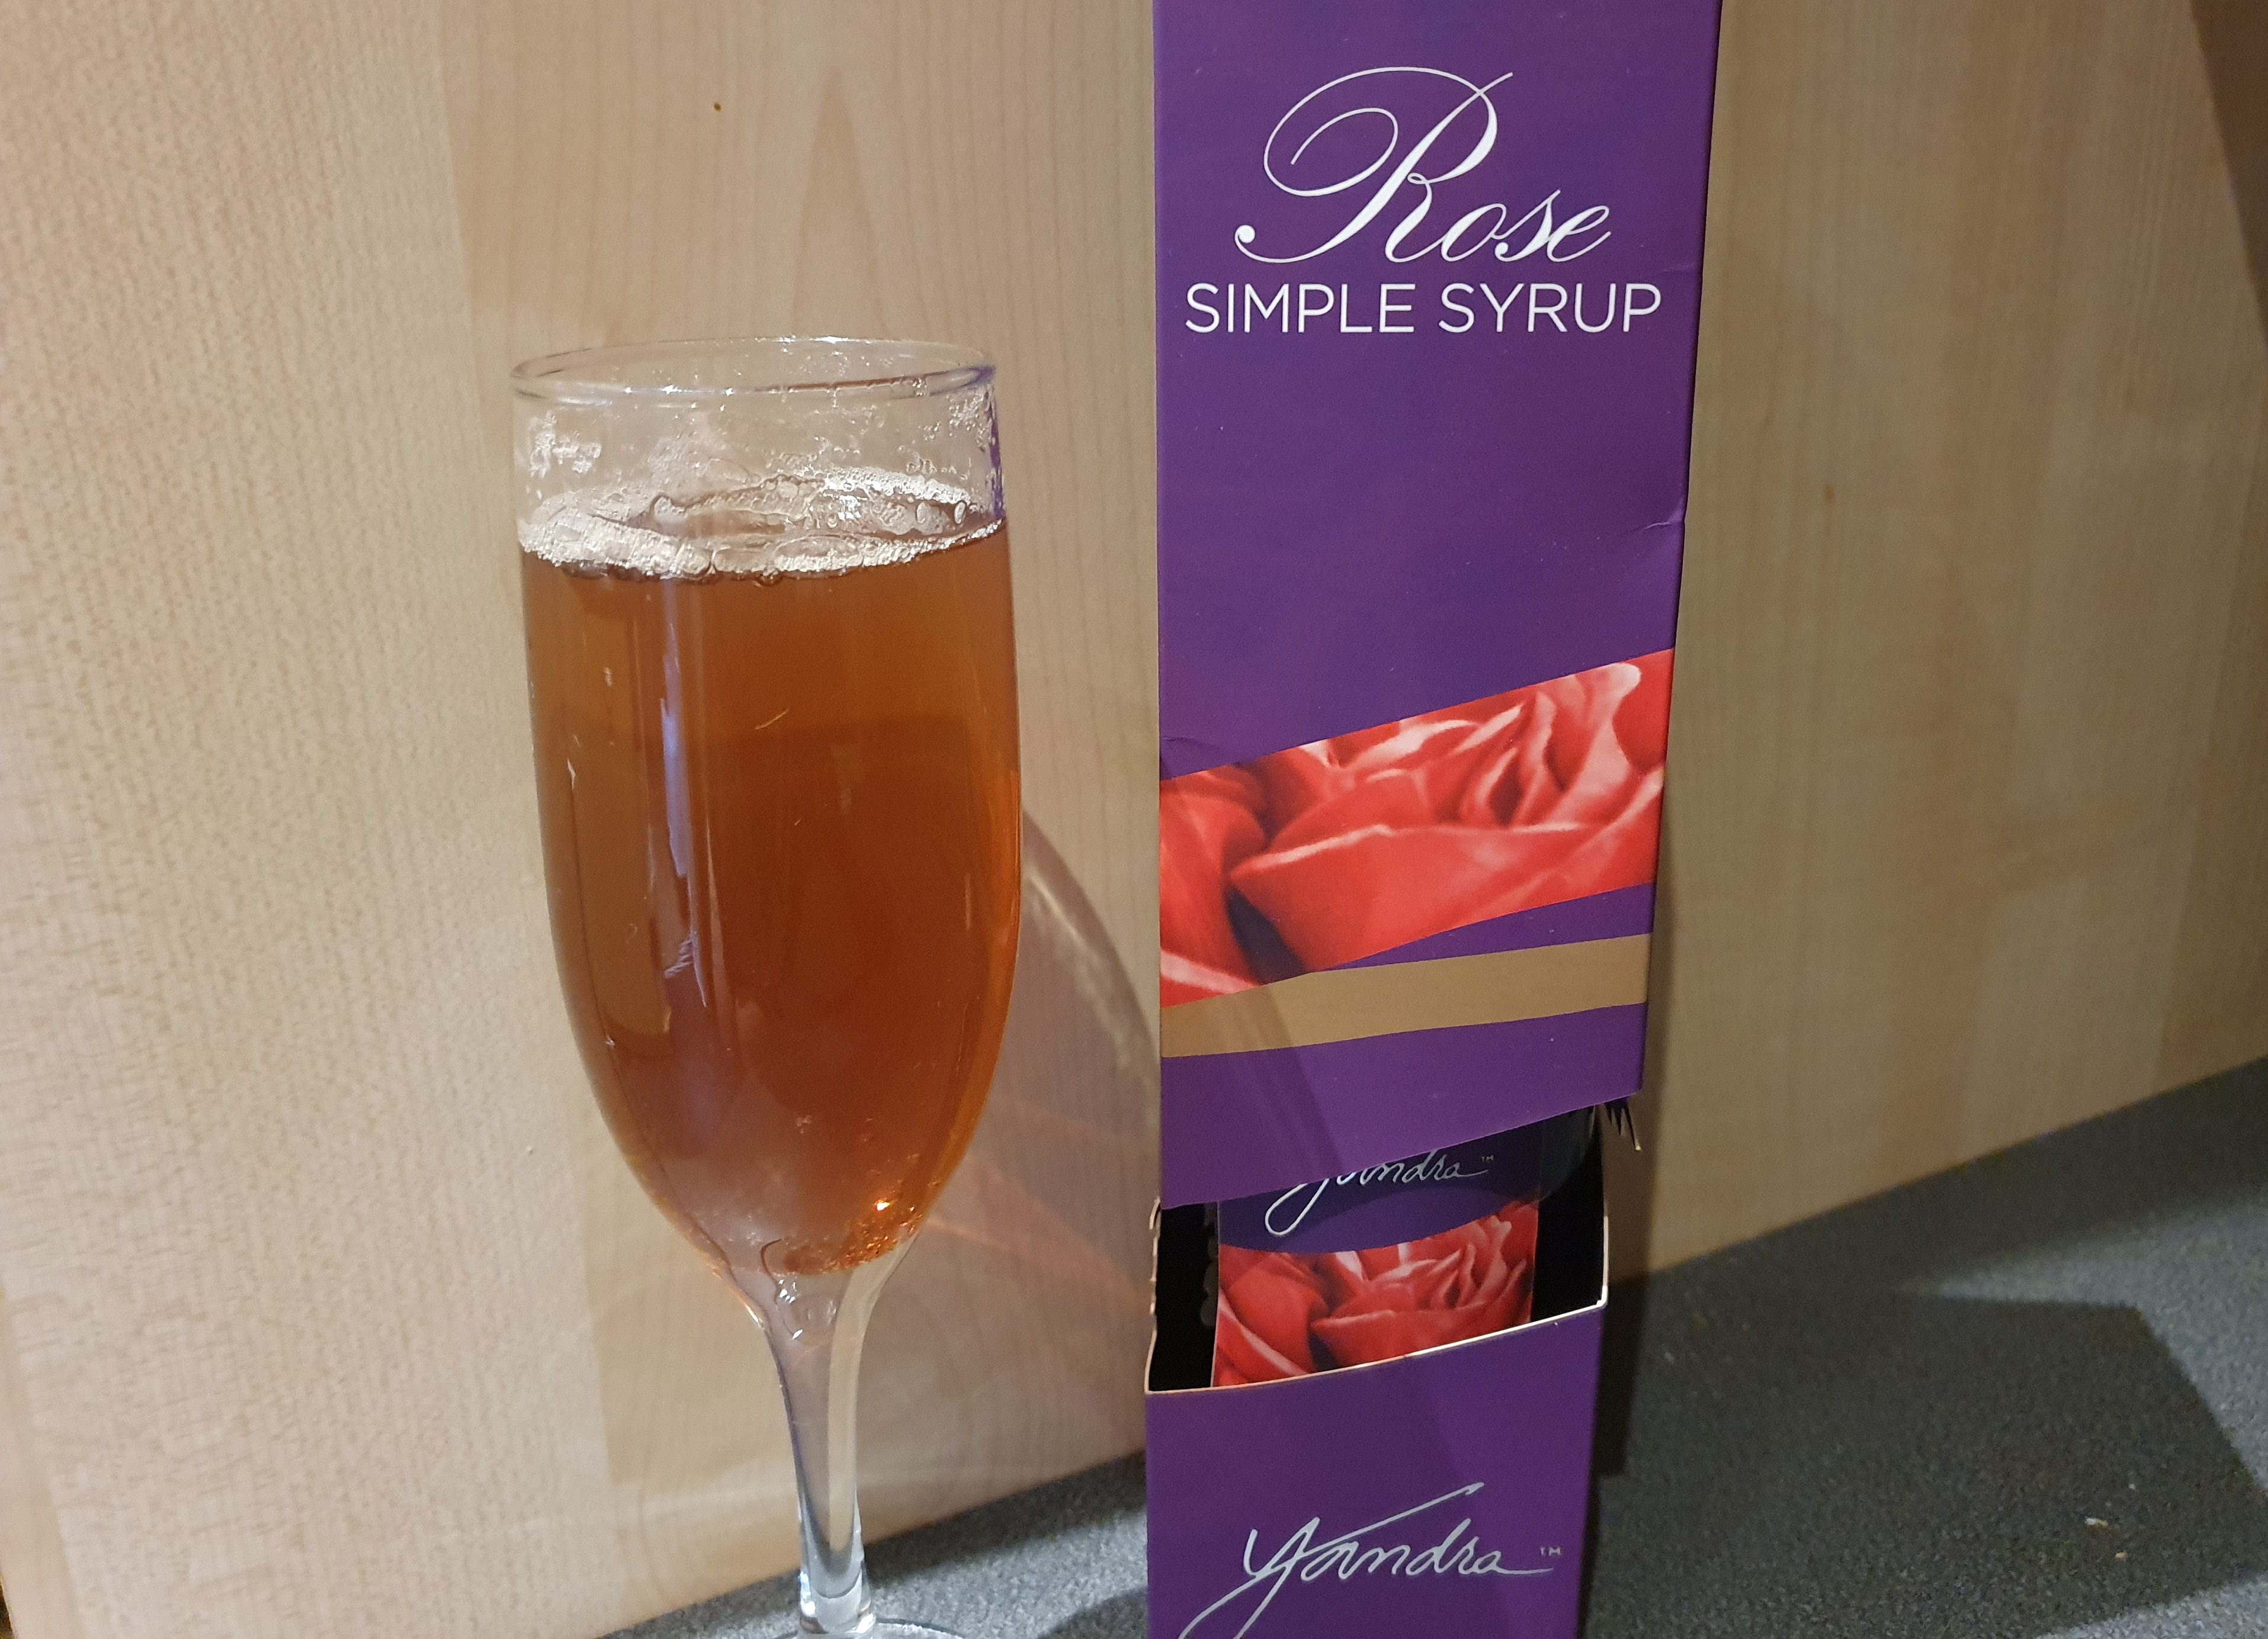 Yandra Rose Tea and Rose Simple Syrup, mix with sparkling water for a sweet refreshing drink